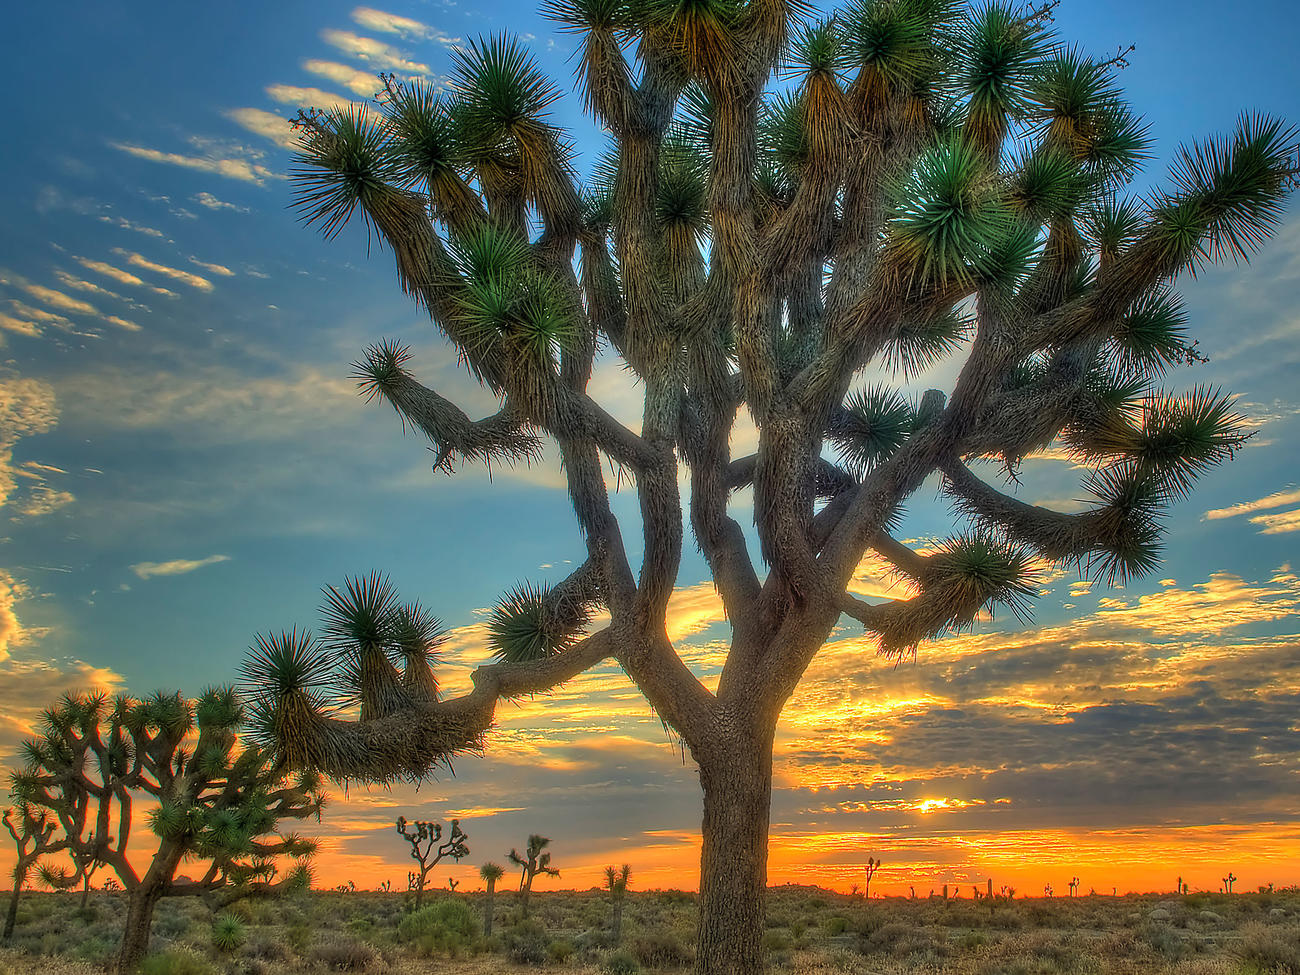 Top Wow Spots of Joshua Tree National Park